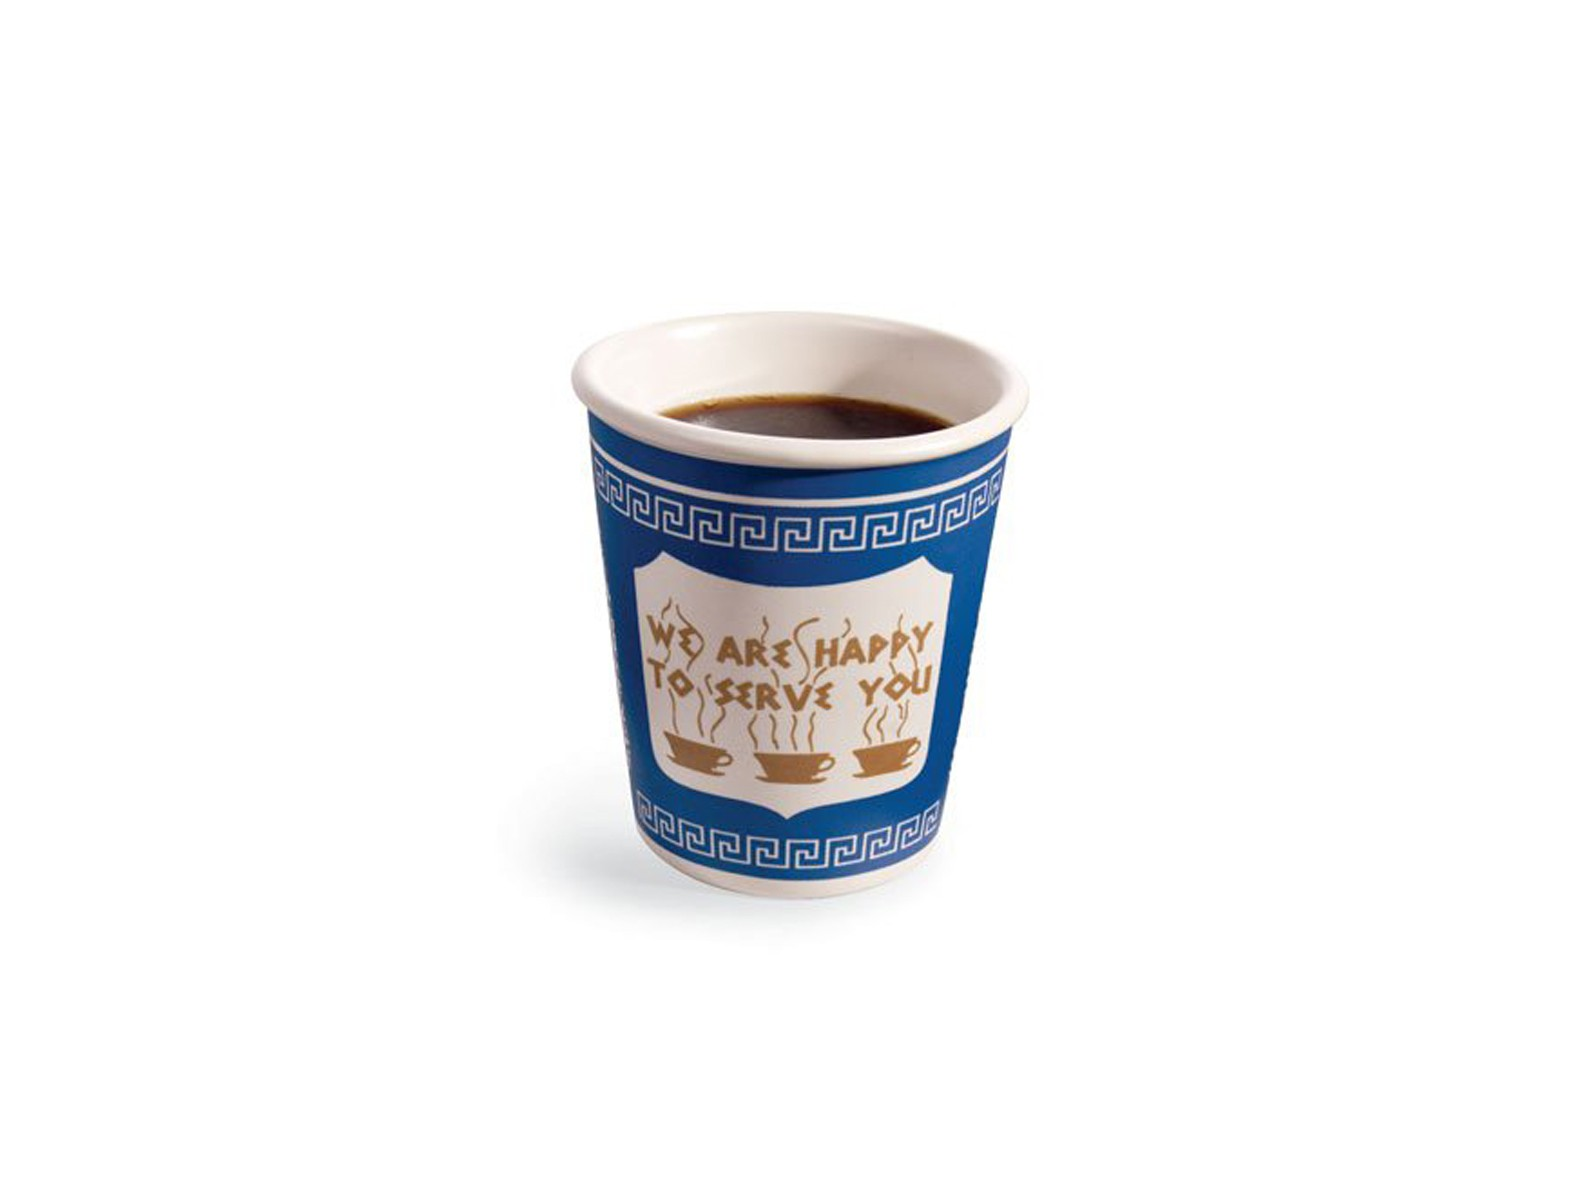 ceramic mug themed to resemble a classic Greek coffee cup